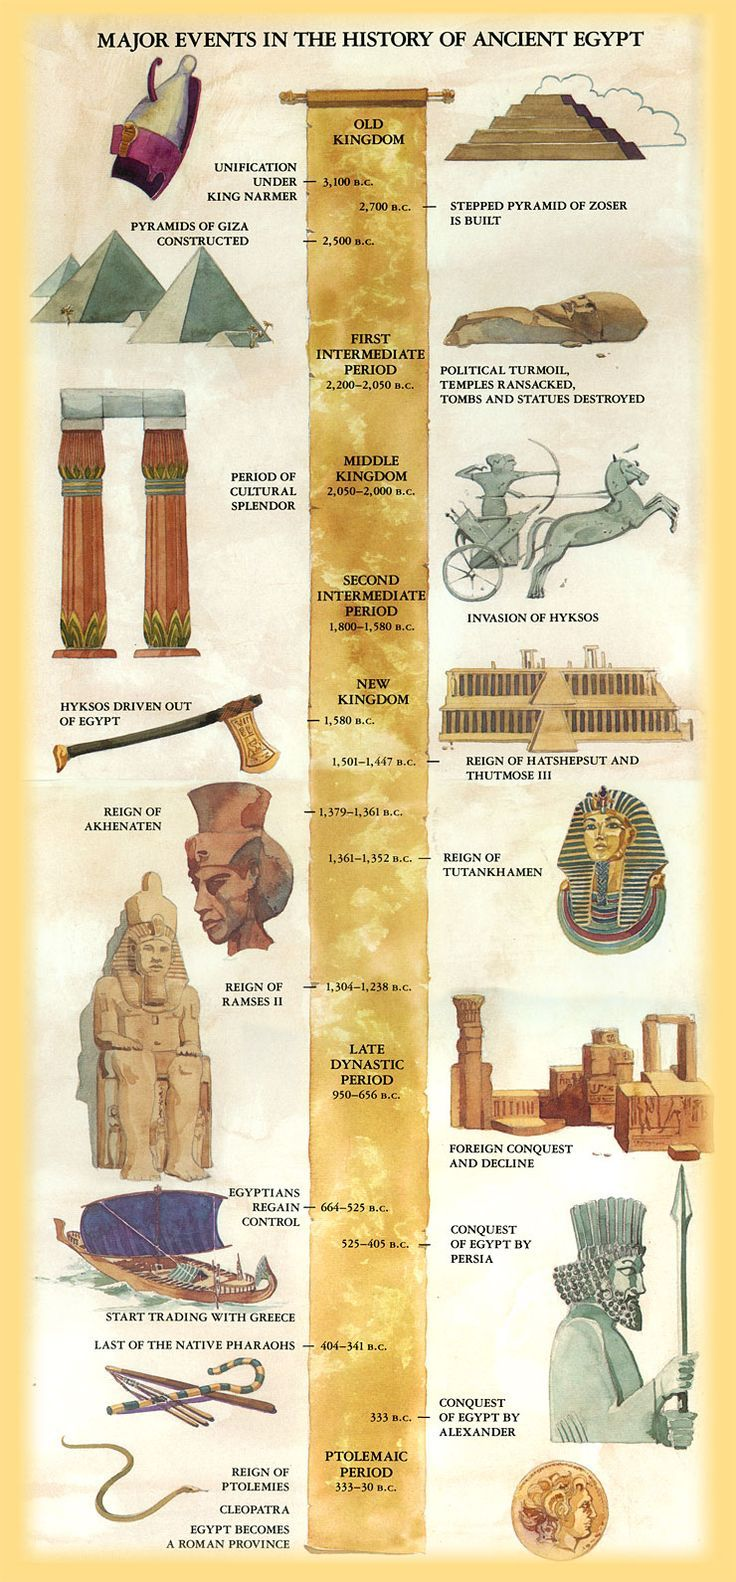 ultimate egypt timeline nice graphic dates are standard